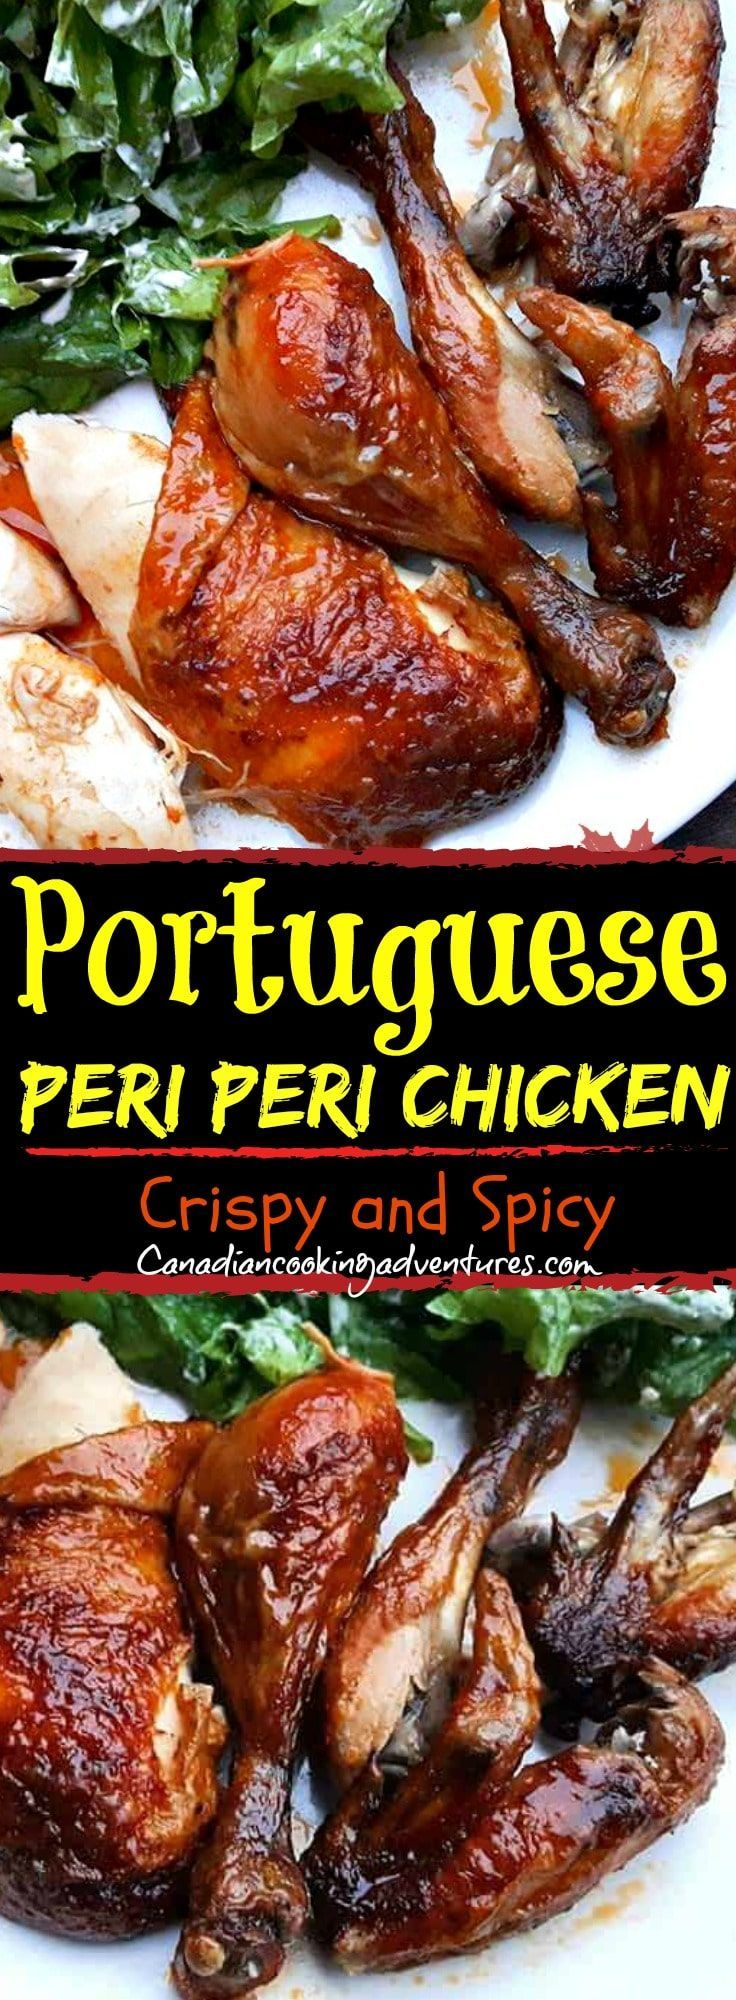 Recipe This is my go to Portuguese Peri Peri Chicken recipe Two ways to make it the choice is yours